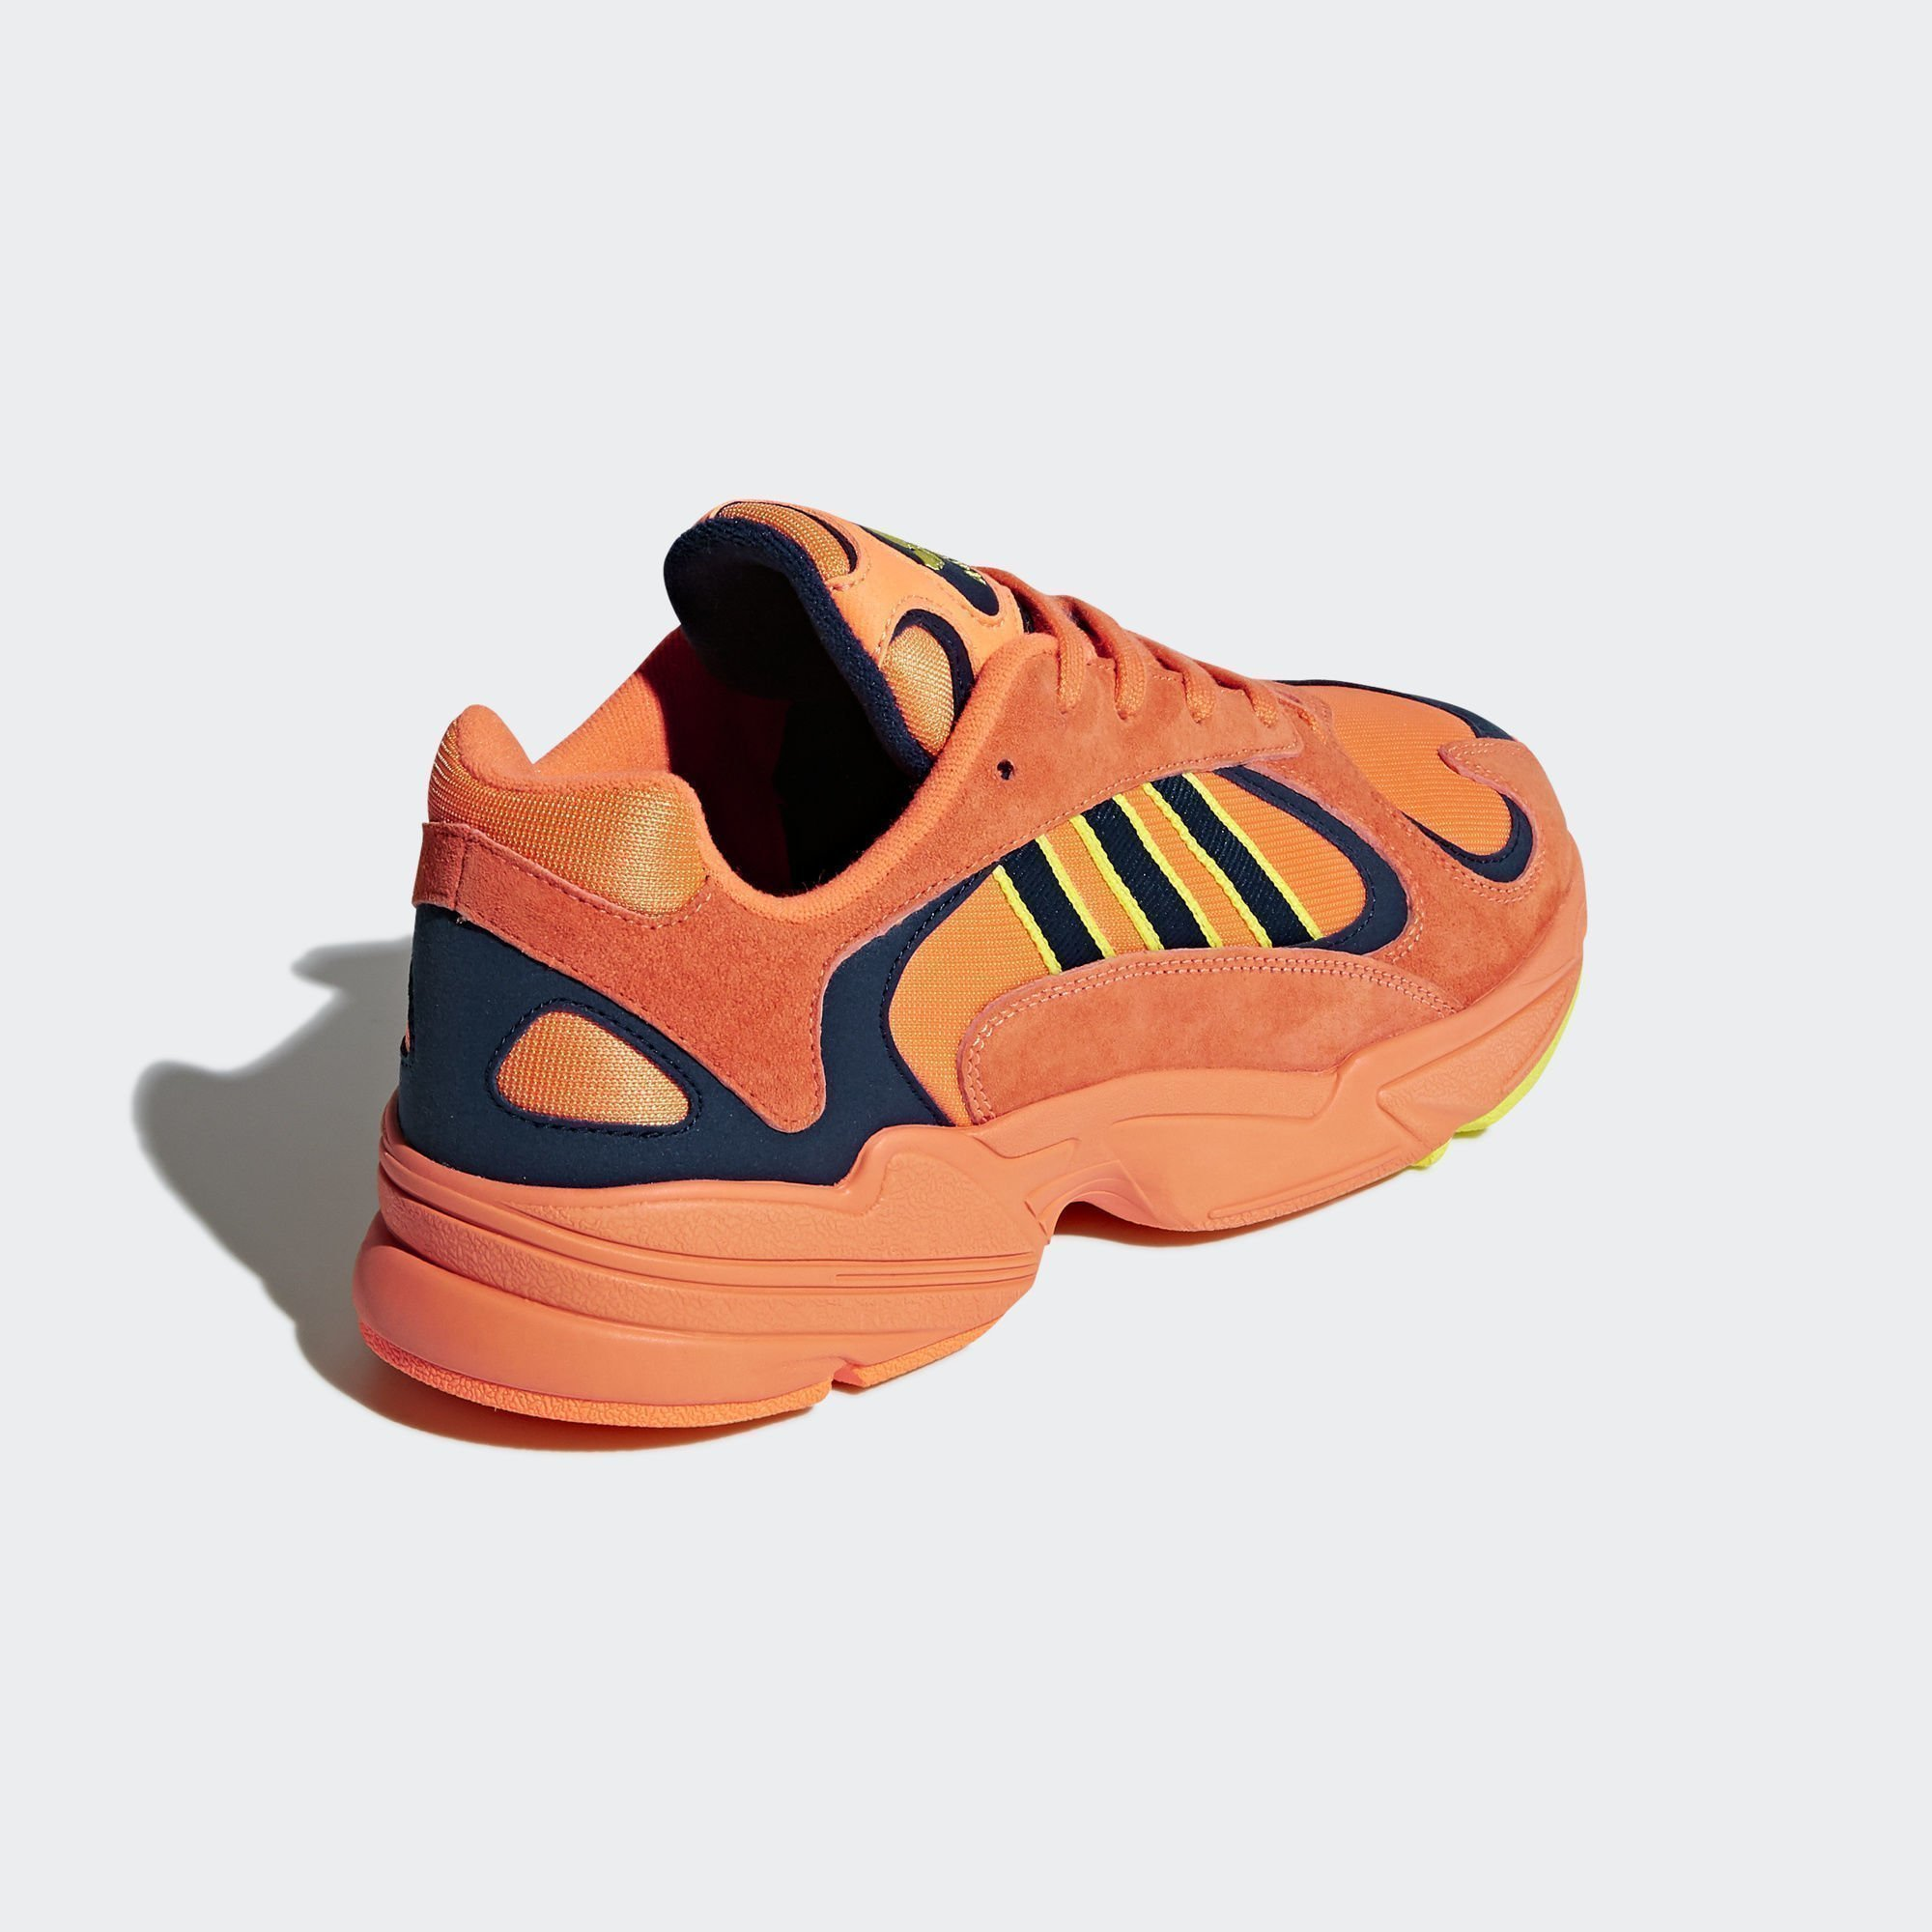 adidas Yung 1 'High-Res Orange' (B37613)